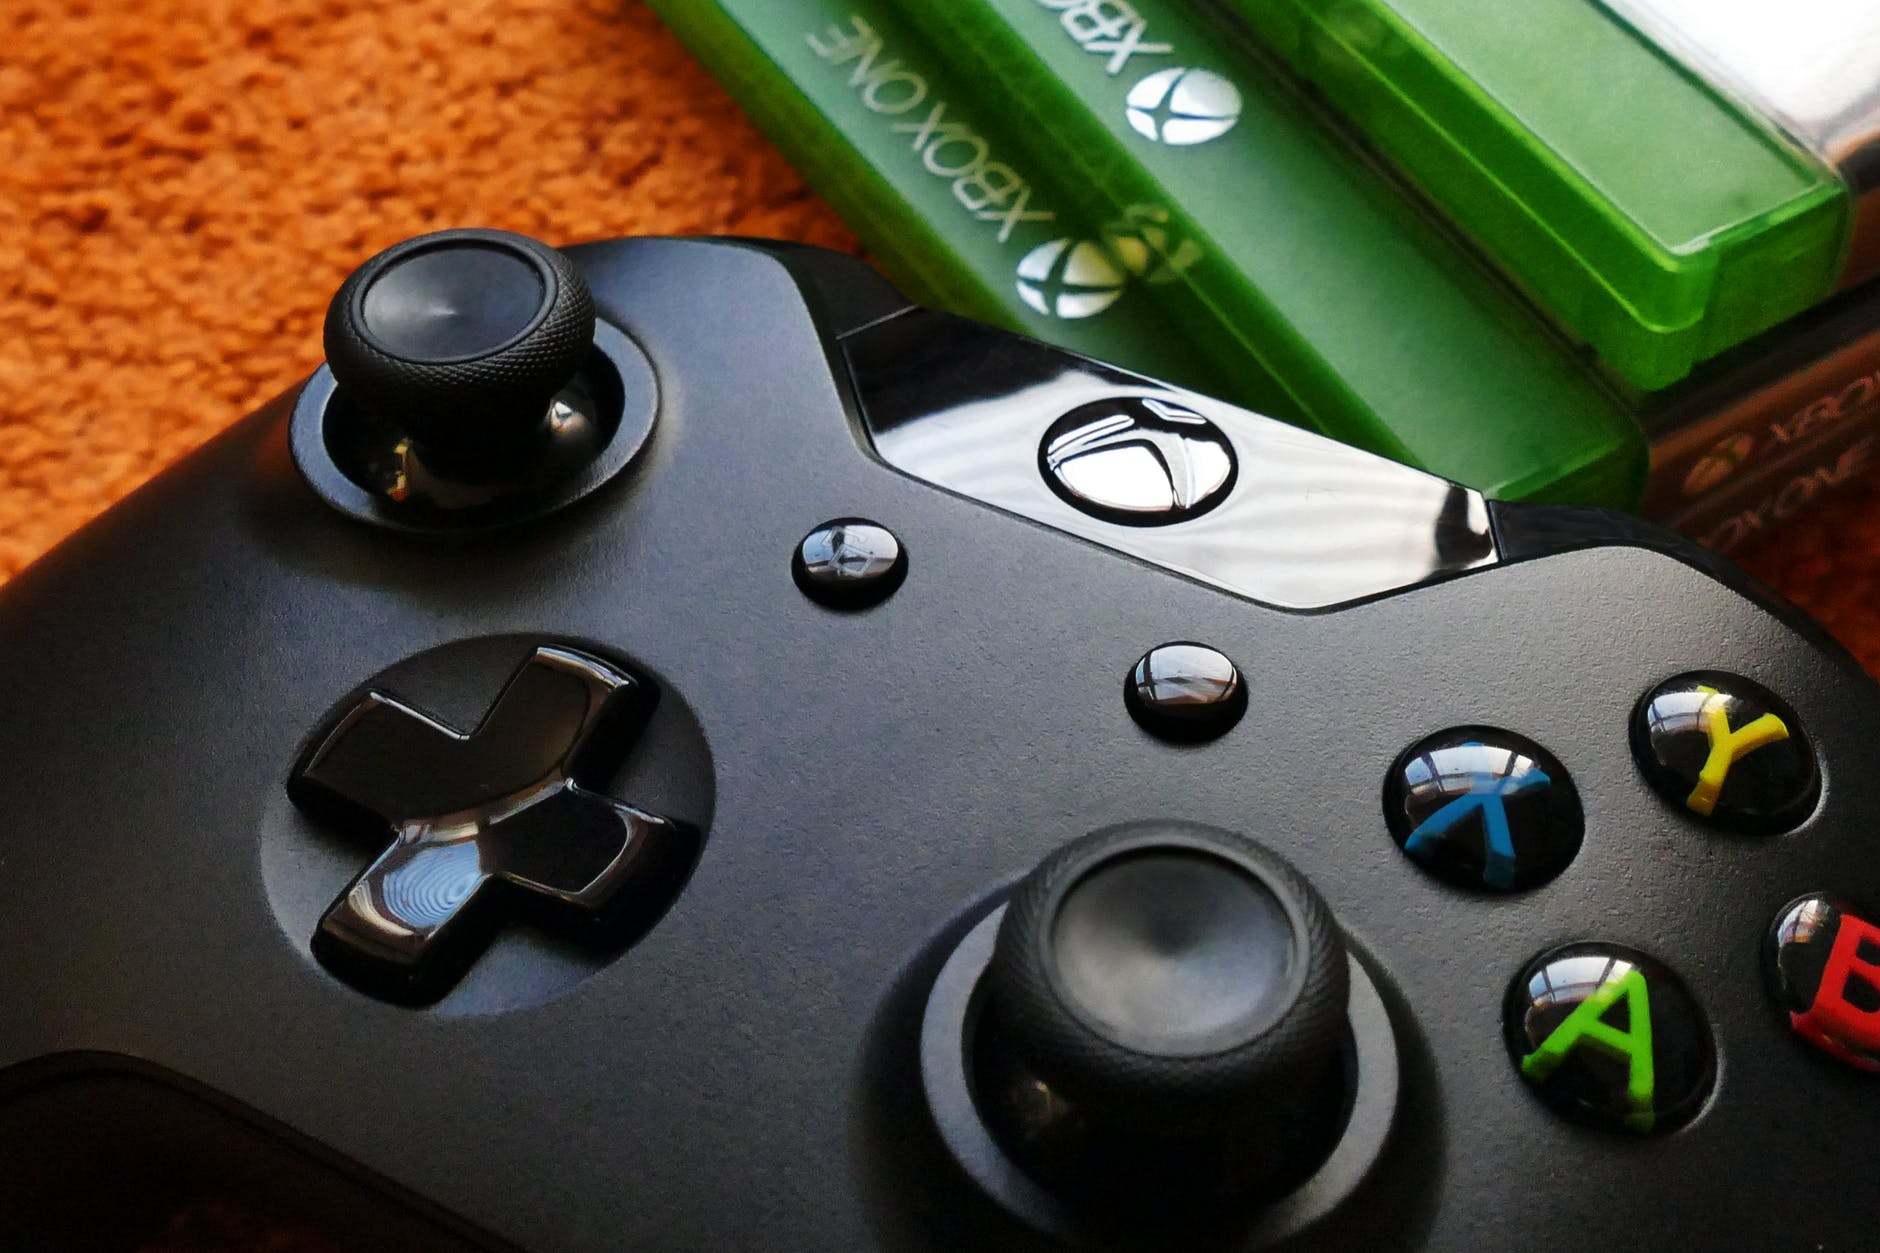 xbox one controller beside three xbox one cases